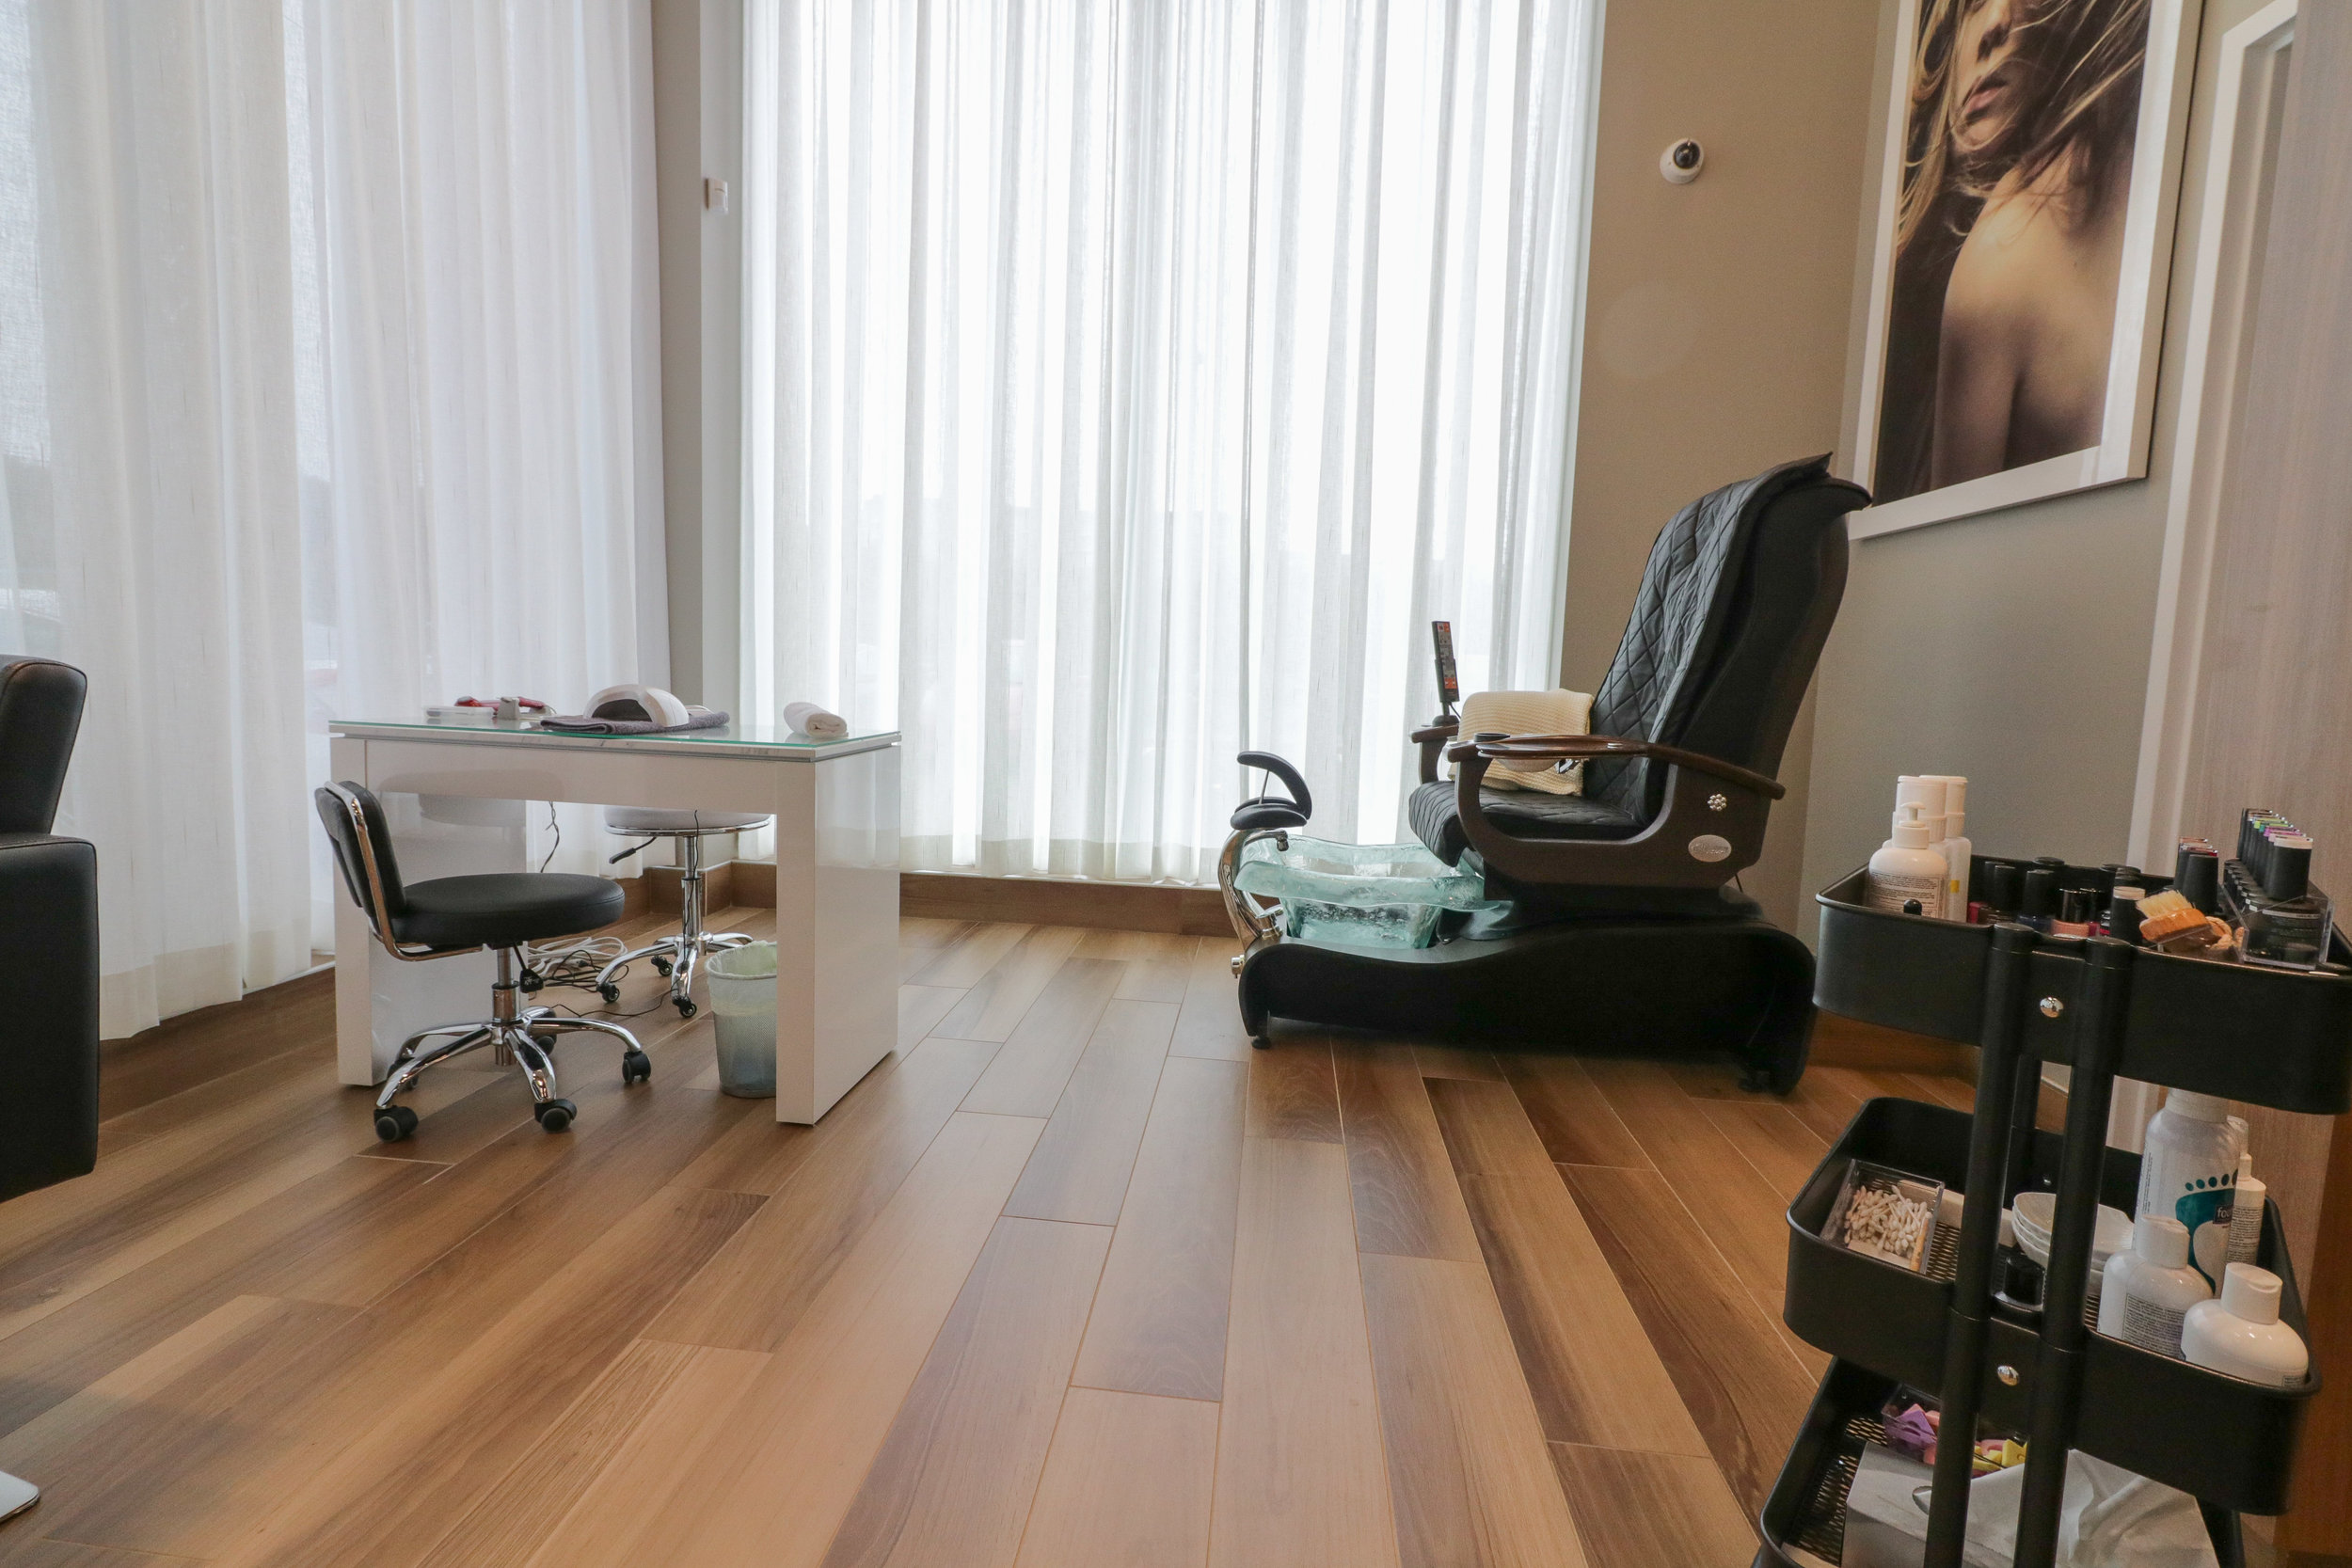 Massage and Pedicure Chair with Manicure table at Portland Street Spa